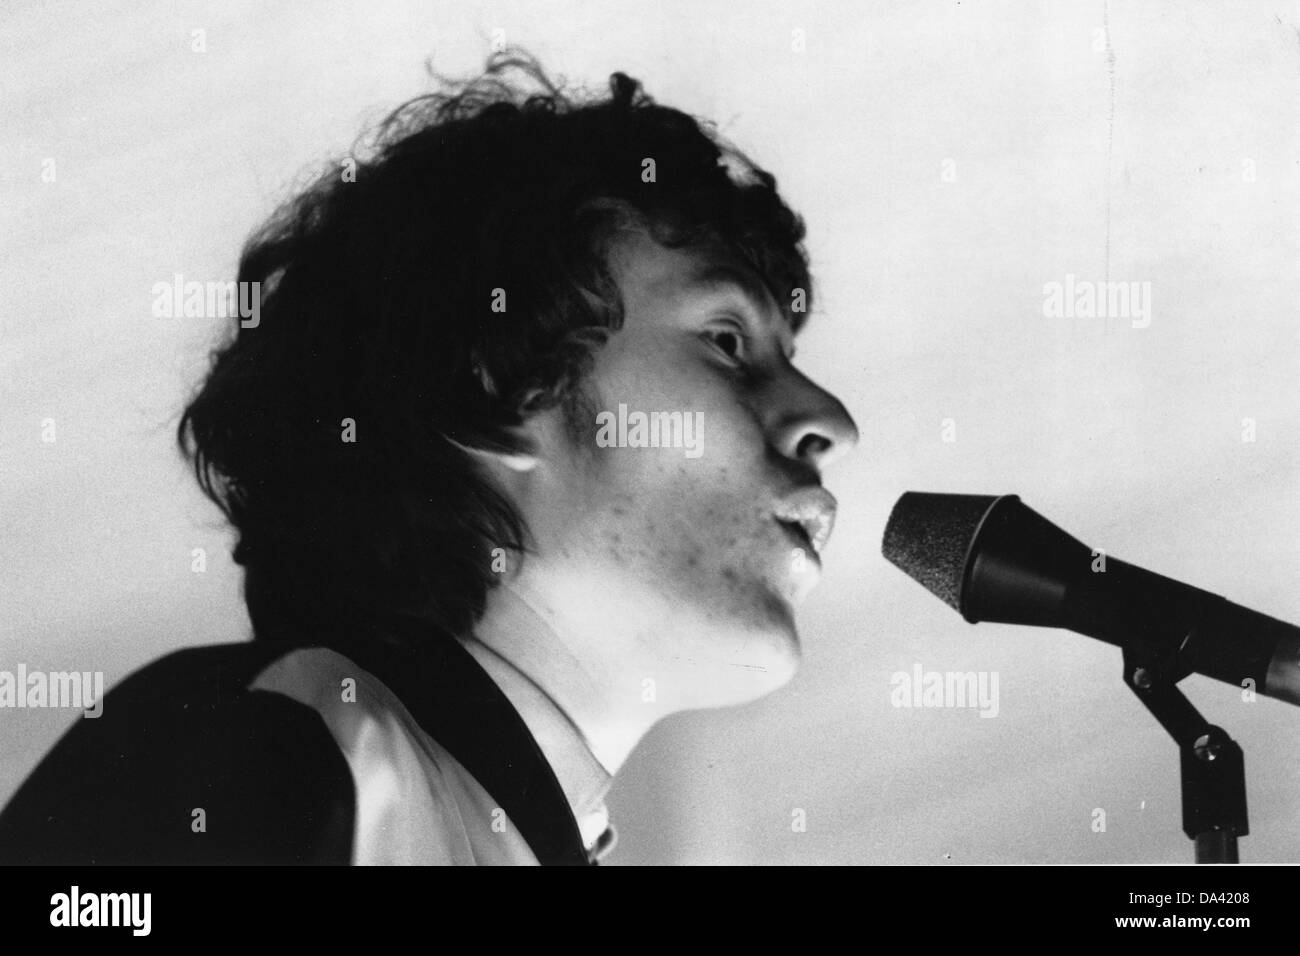 STEVIE WINWOOD  English rock guitarist in 1966 - Stock Image